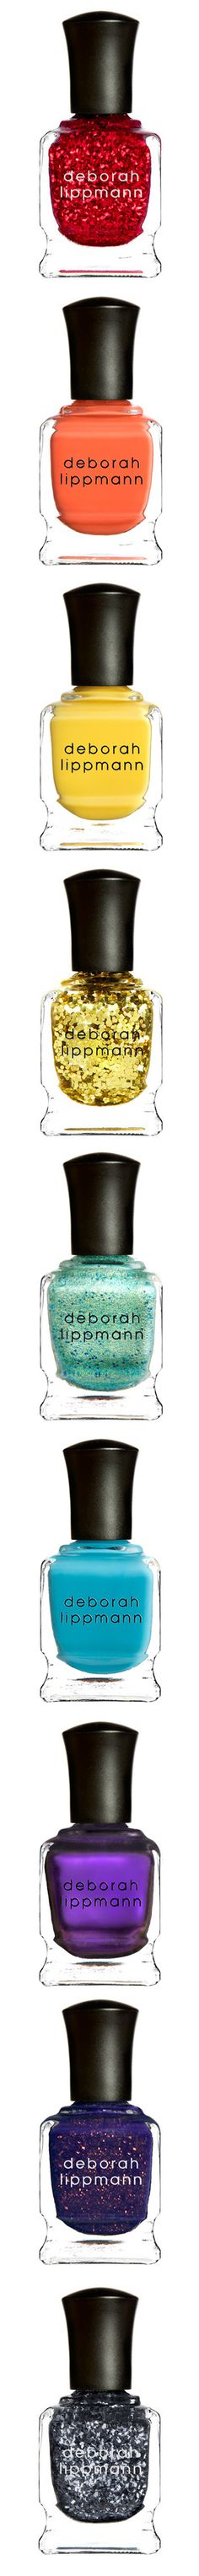 Deborah Lippmann Nail Polish 0__0 OBSESSED WITH THE COLORS!